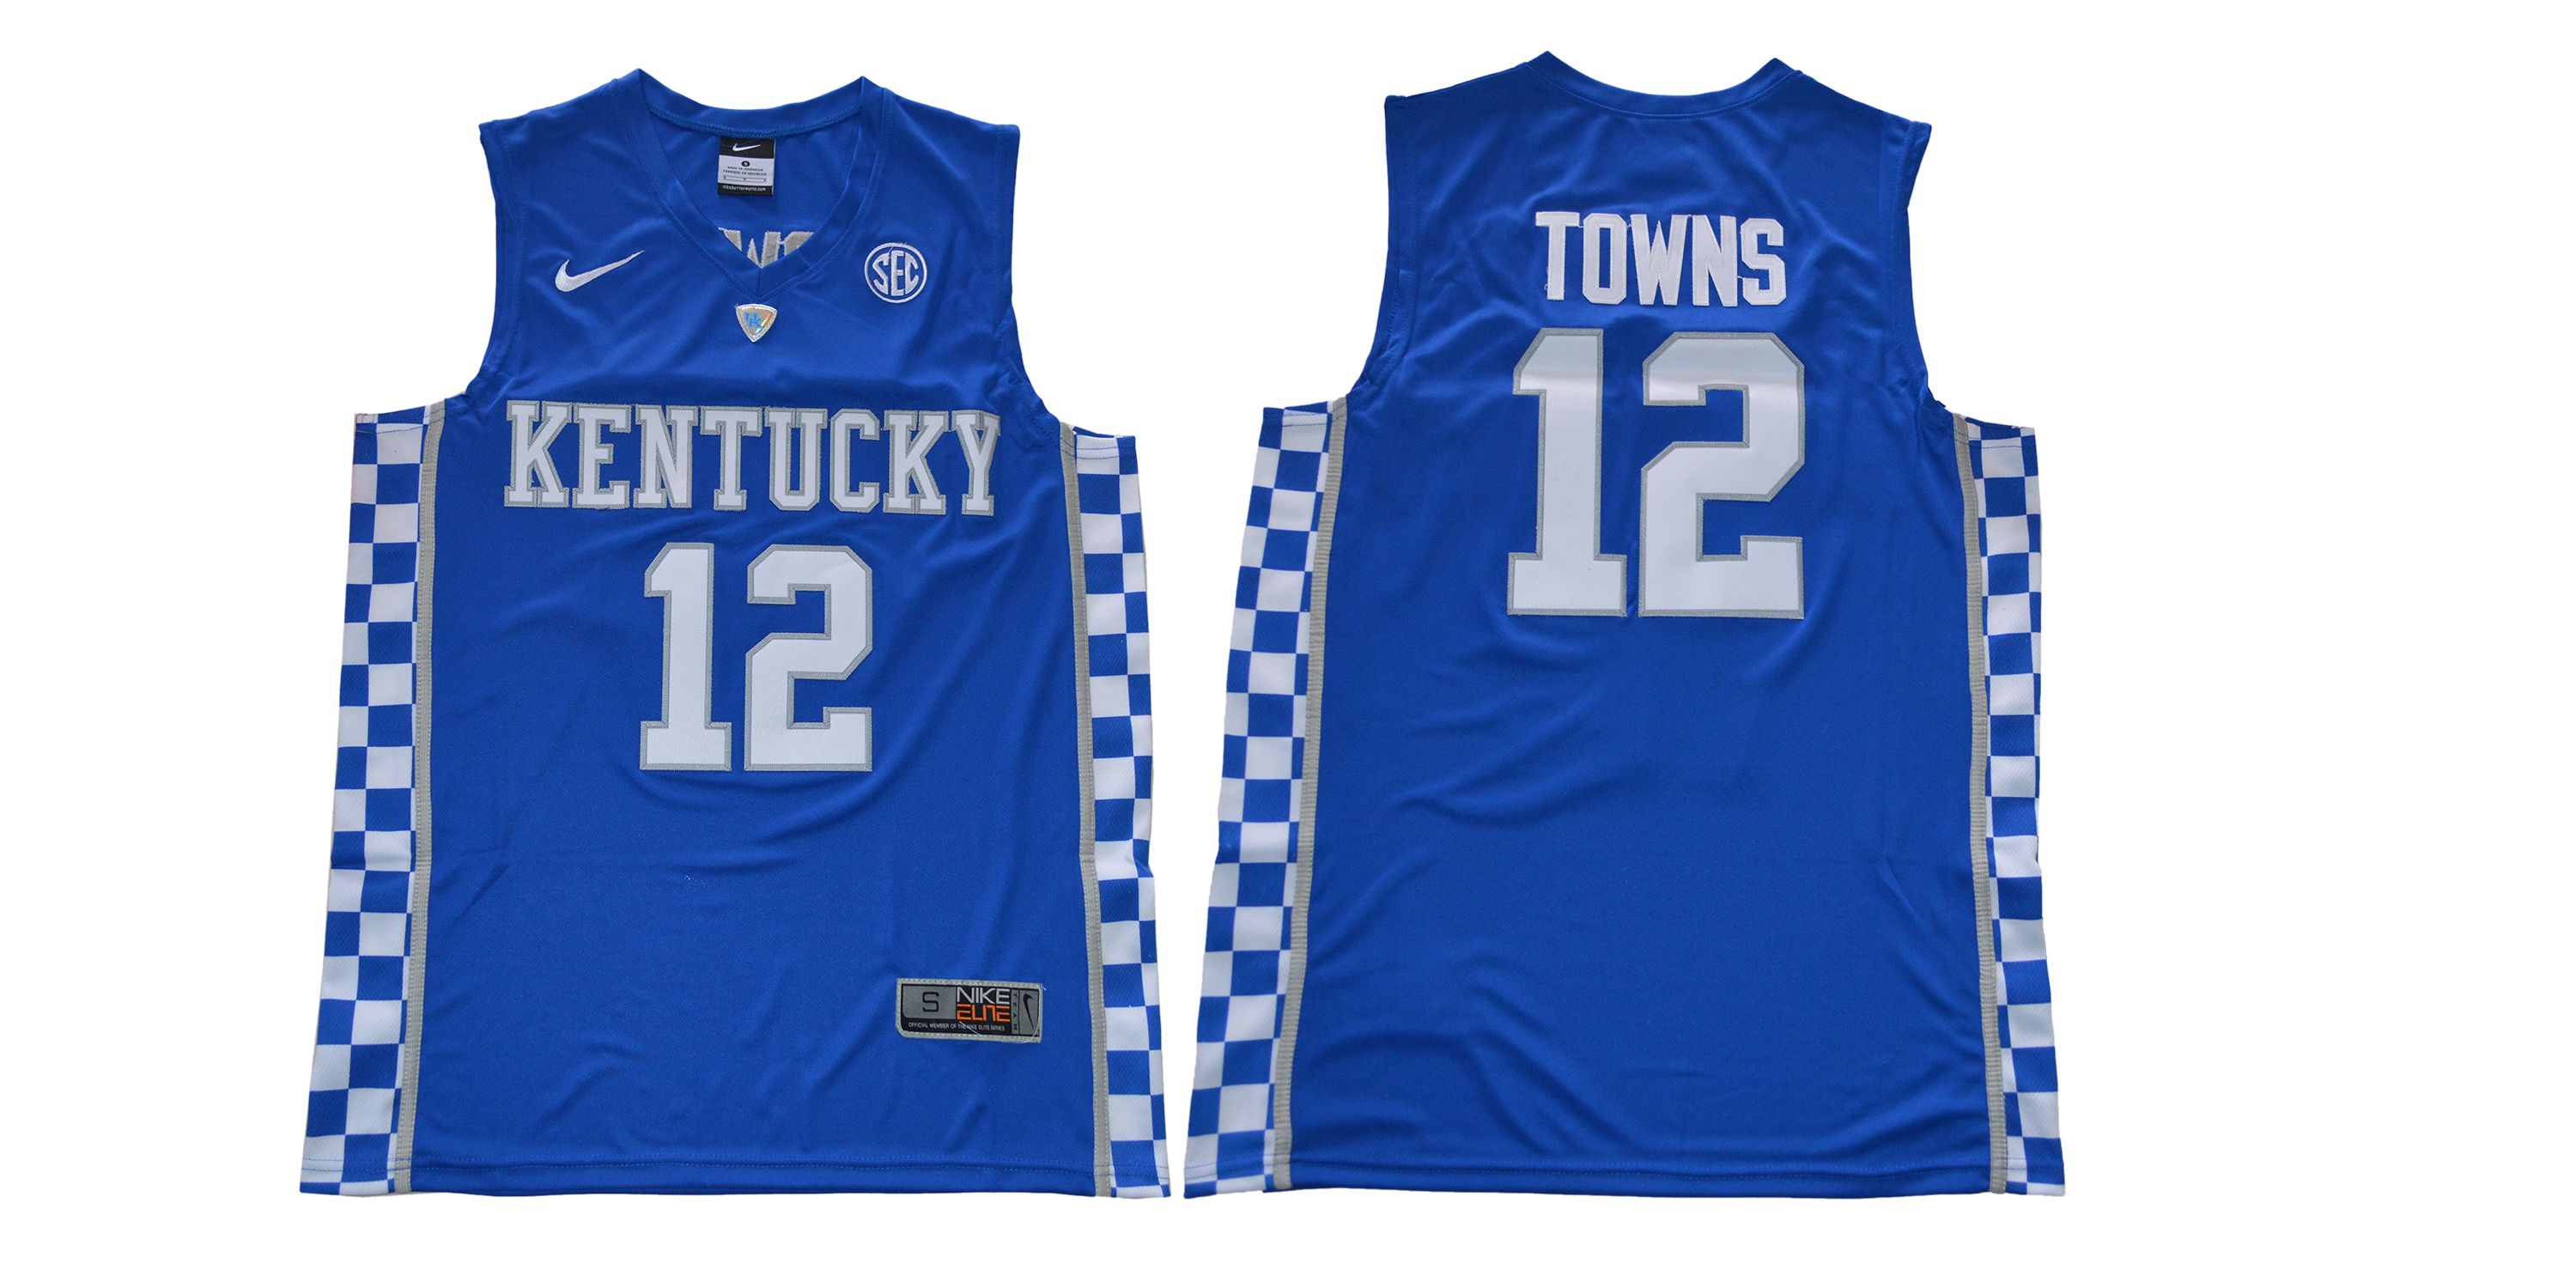 Men Kentucky Wildcats 12 Towns Blue NBA NCAA Jerseys